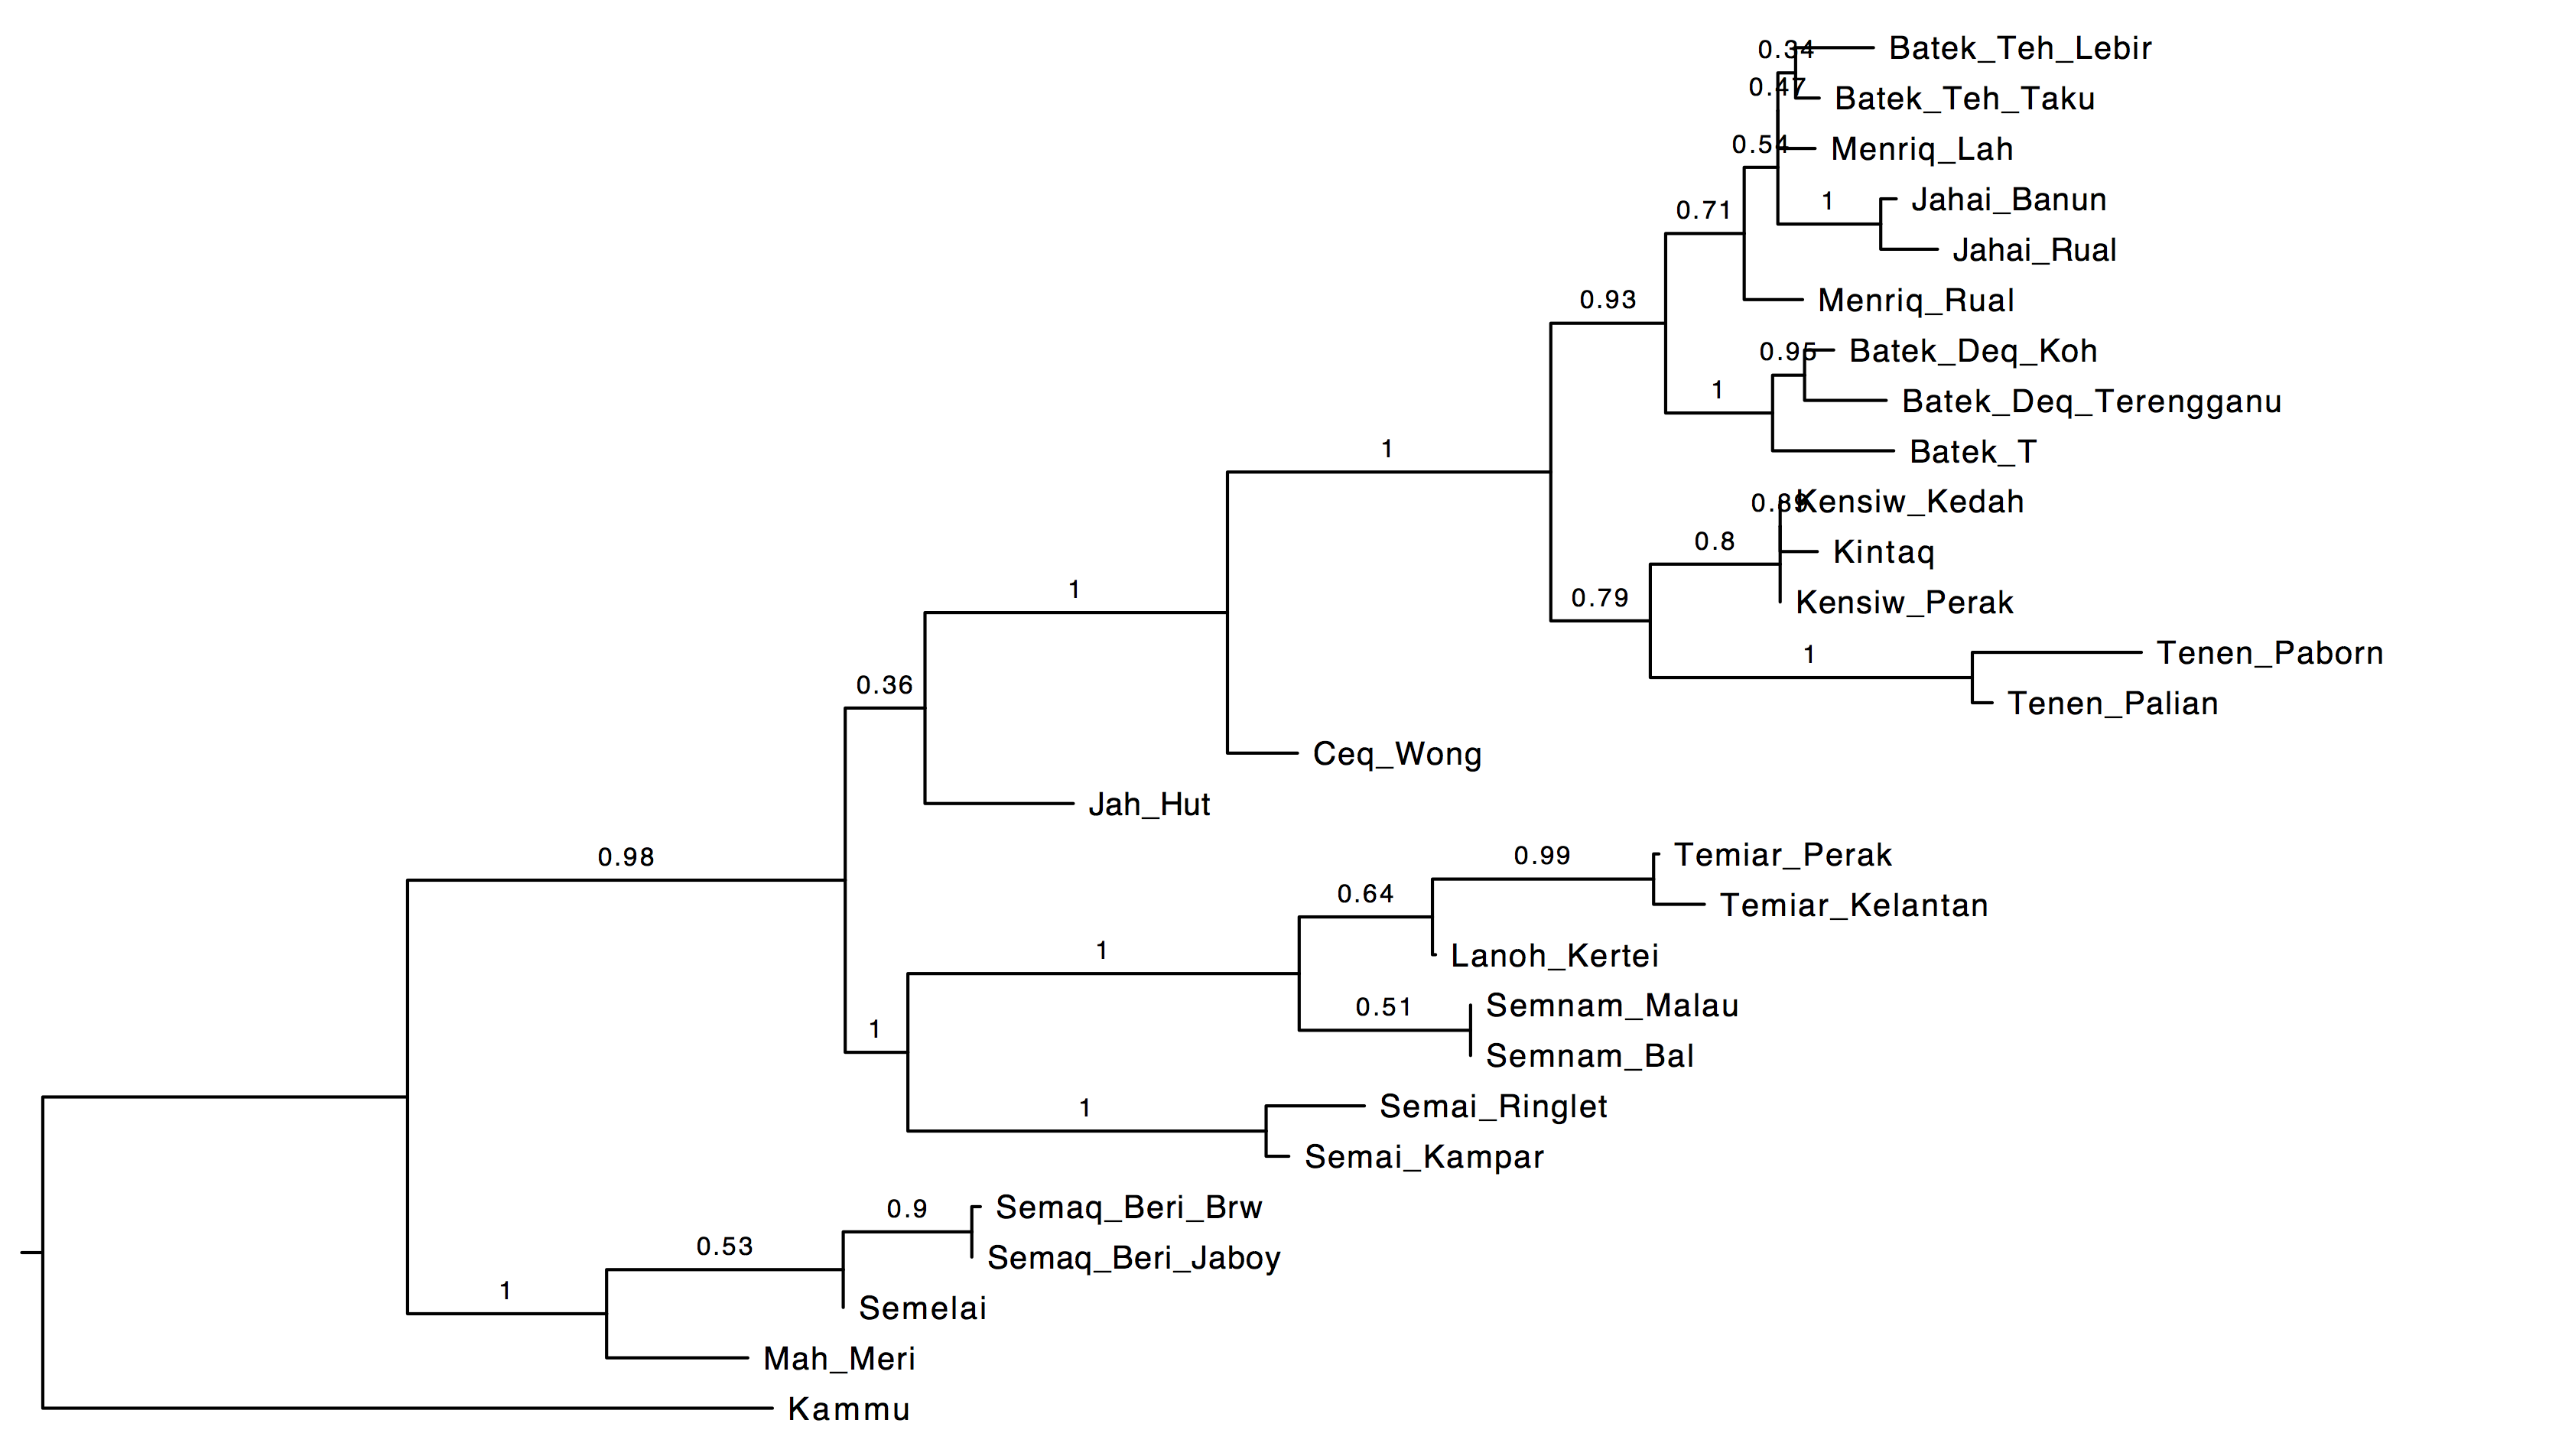 An Aslian family tree from a MCMC search with monophyly constraints for the North Aslian and South Aslian families (drawing by FigTree with posterior probabilities on branches).